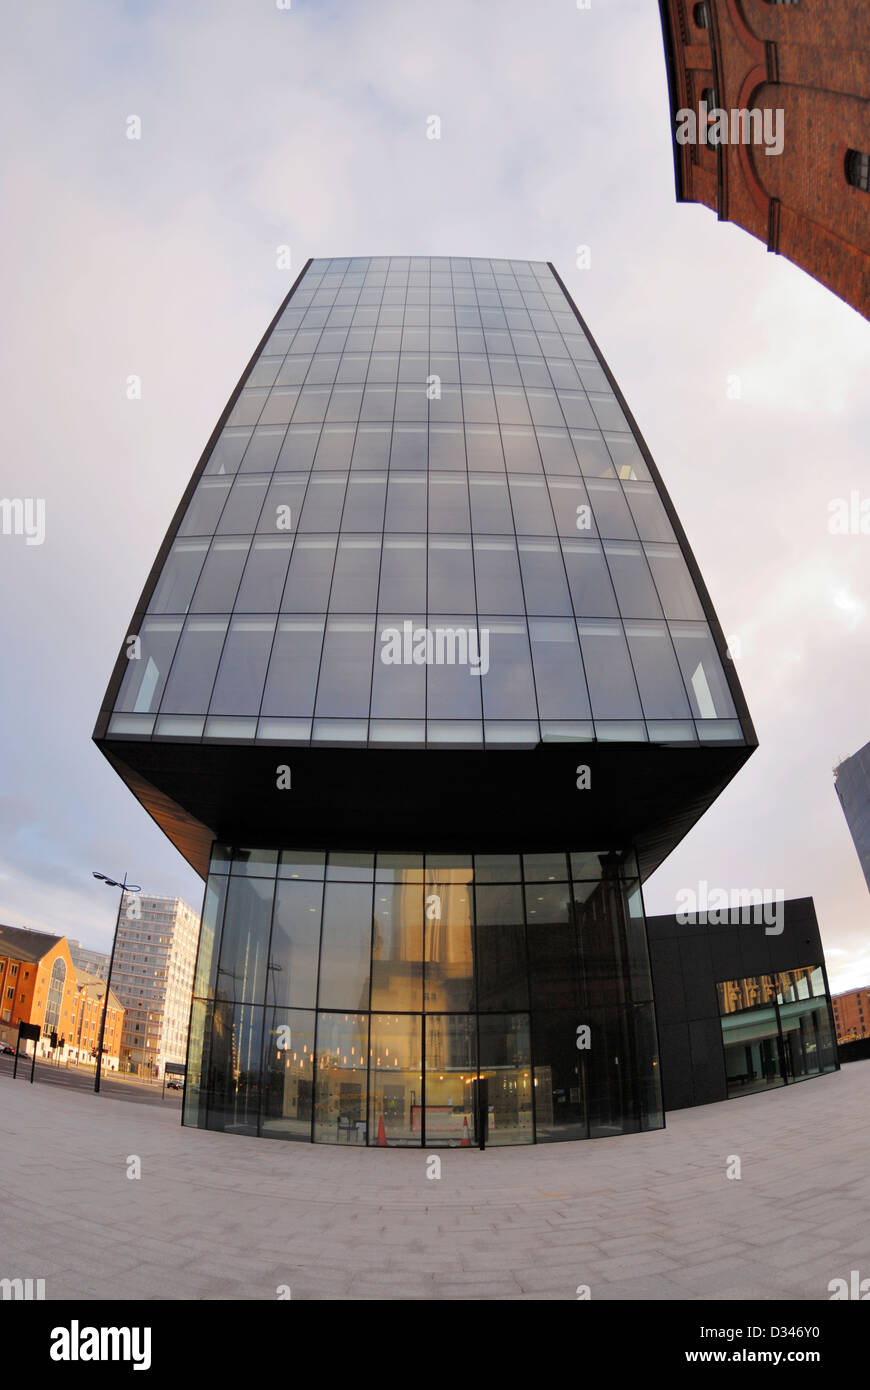 New commercial building on Mann Island situated on the Liverpool waterfront. Stock Photo